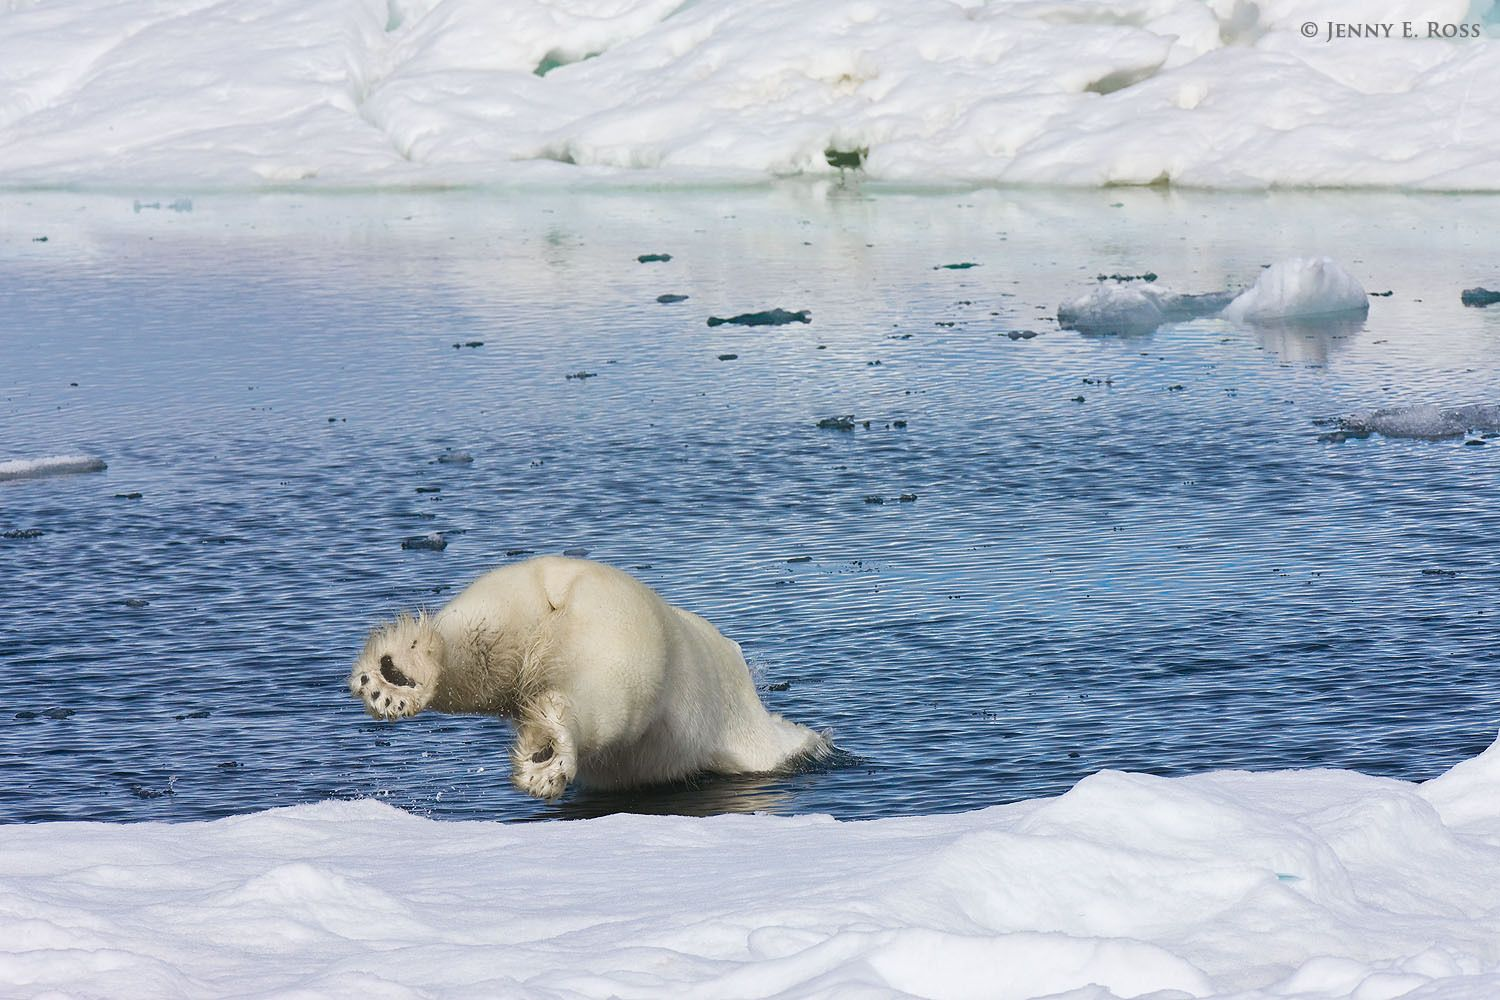 A subadult male polar bear (Ursus maritimus) dives from the edge of the sea ice into an open lead between floes.